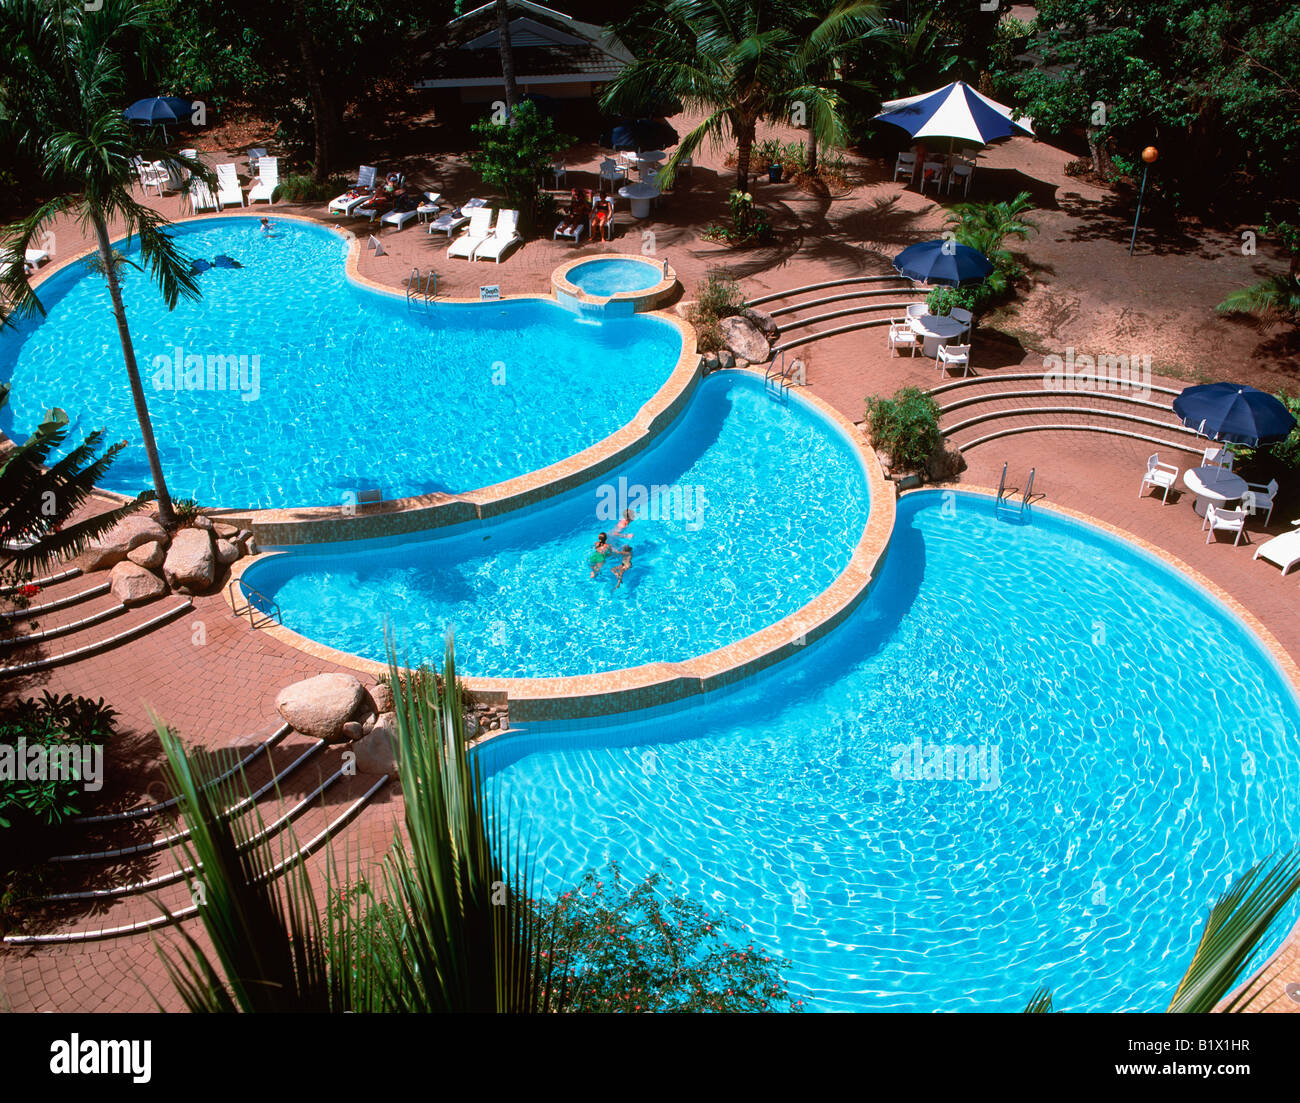 Cascade swimming pool dunk island resort queensland australia stock photo 18397059 alamy for Block island resorts swimming pool